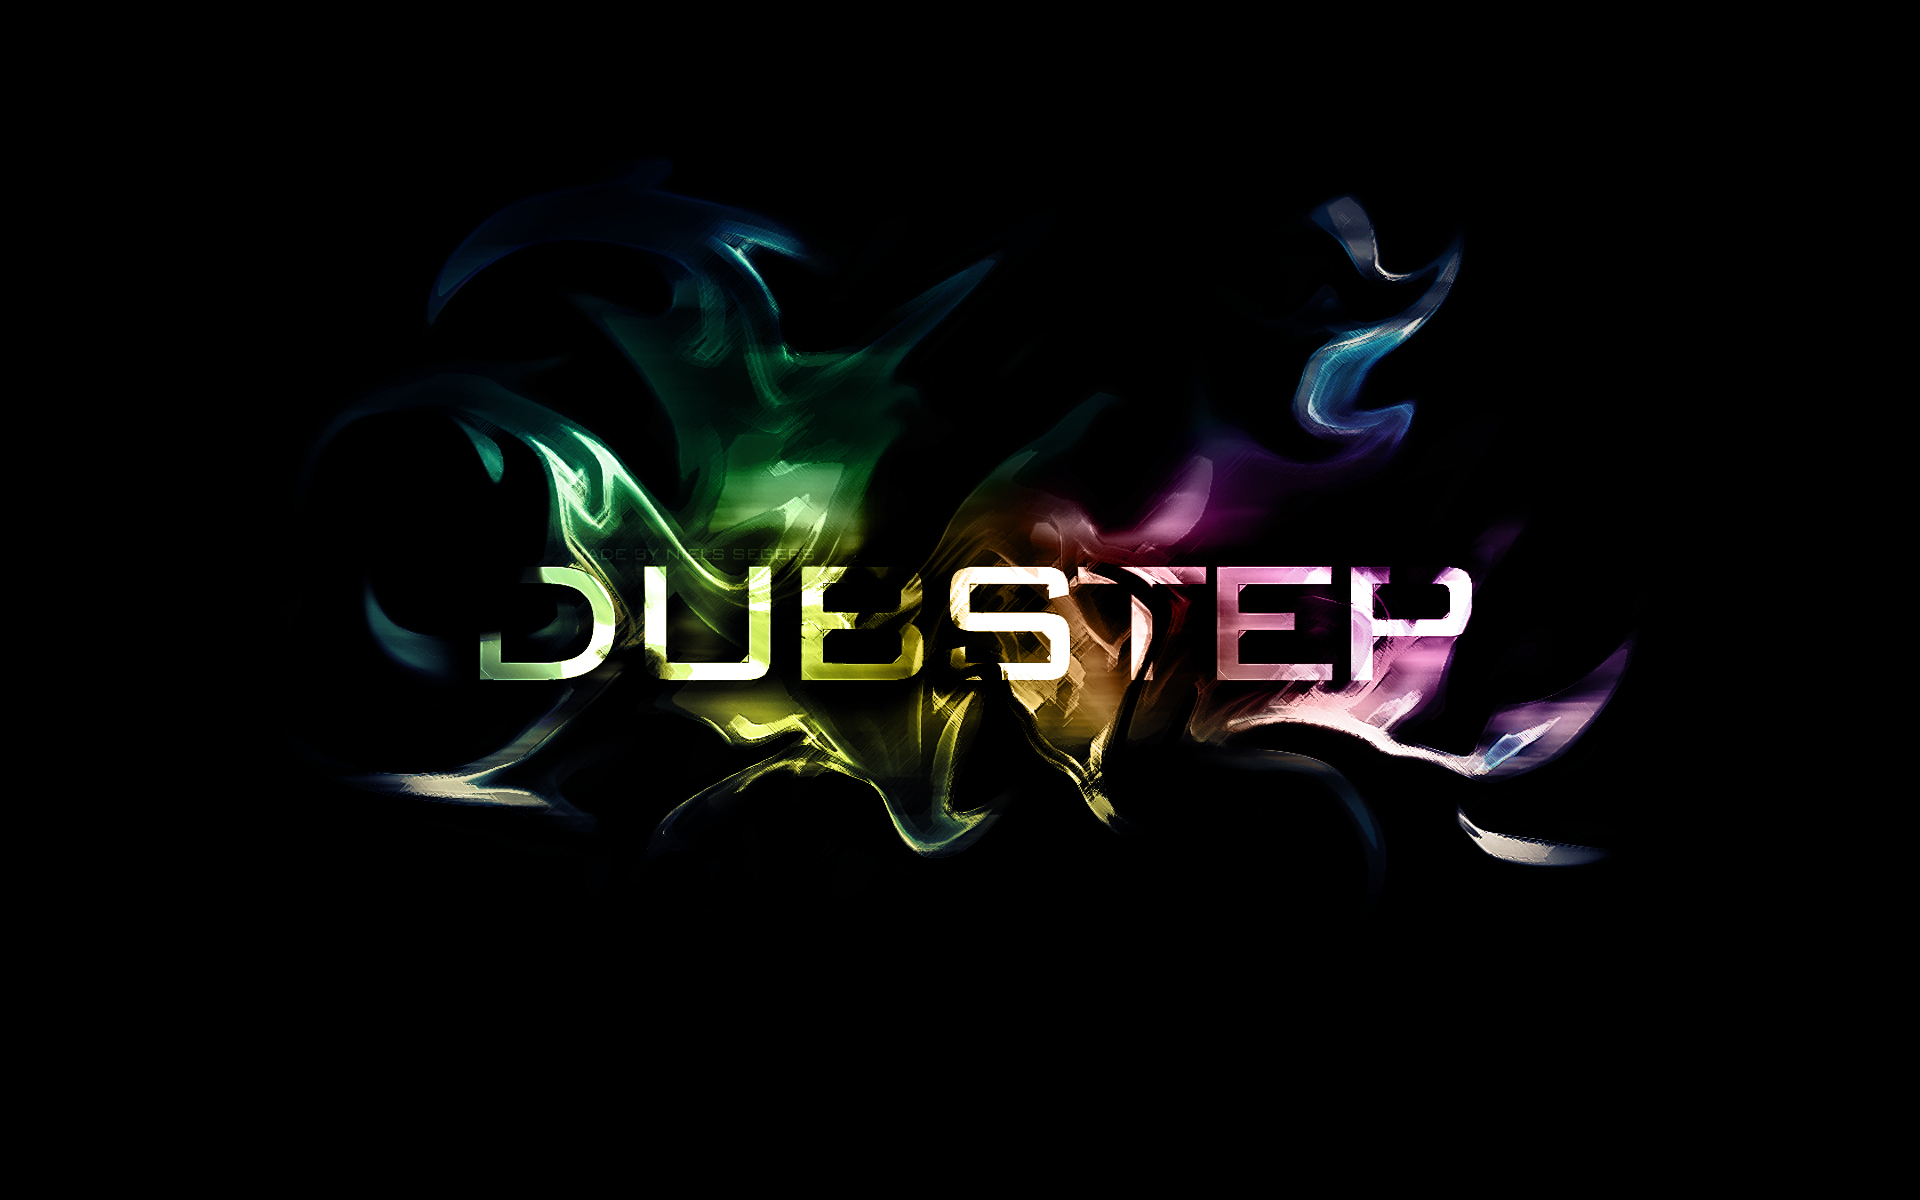 Dubstep Background Wallpaper #6935163